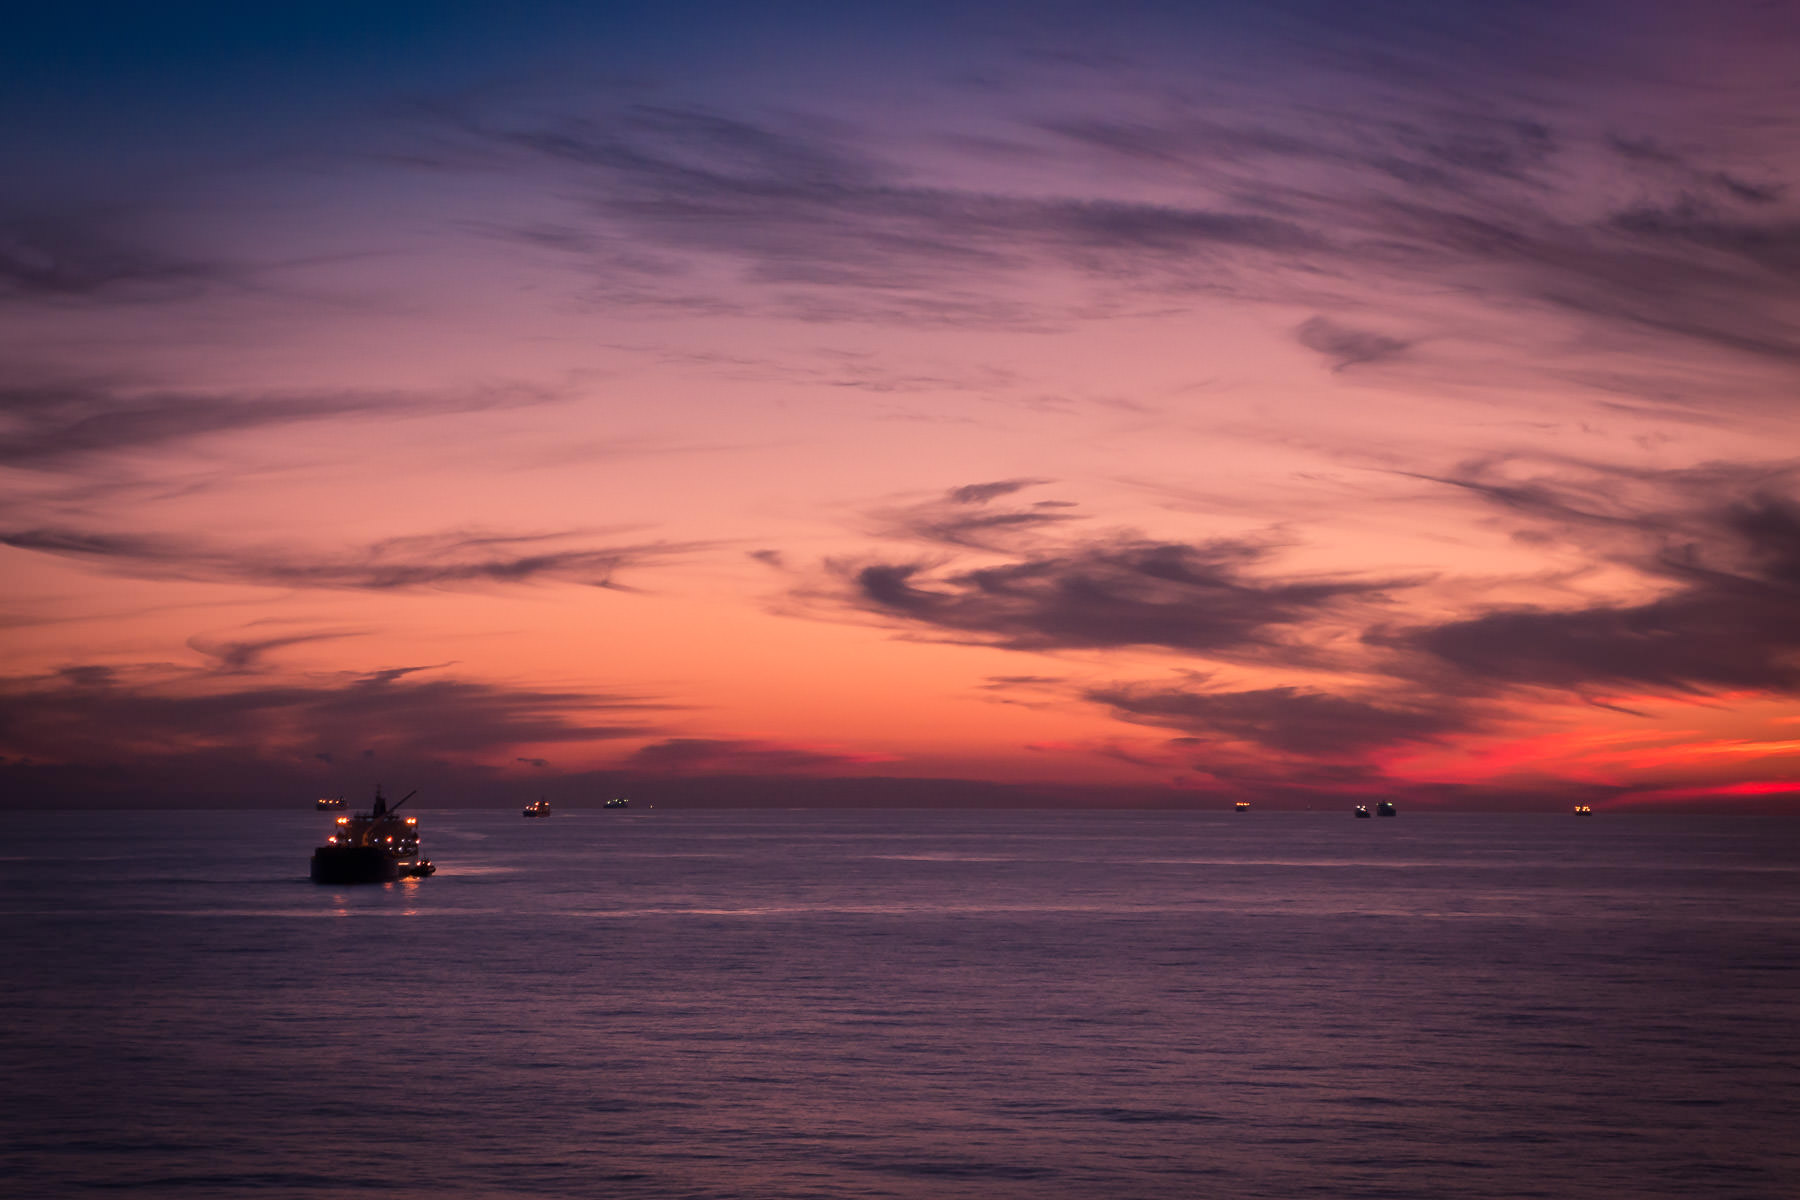 Ships await entry into the Port of Houston at the Bolivar Roads Anchorage off the coast of Galveston, Texas.